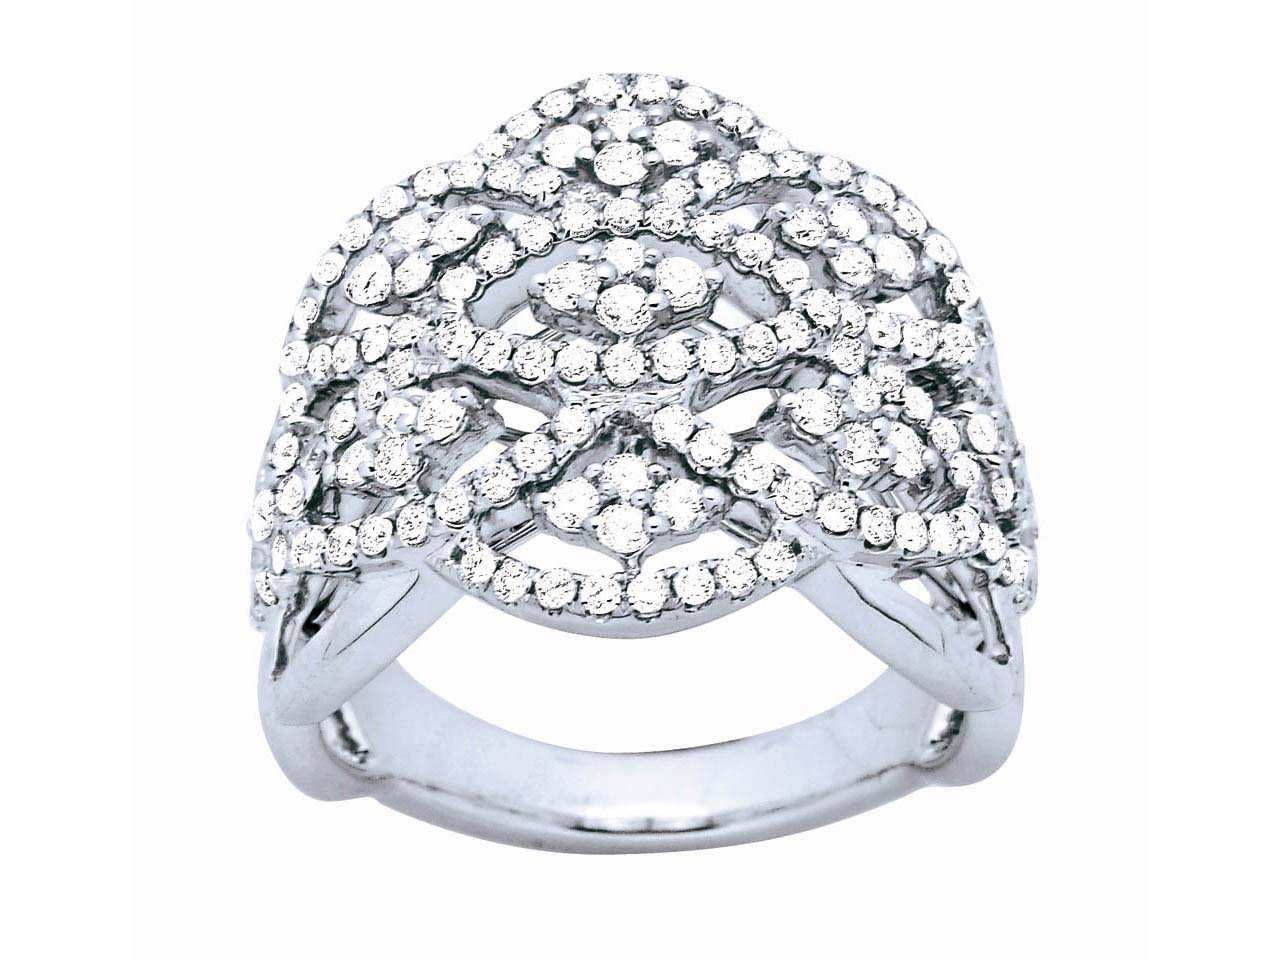 Bague renaissance, Or gris, diamants 1,29 ct